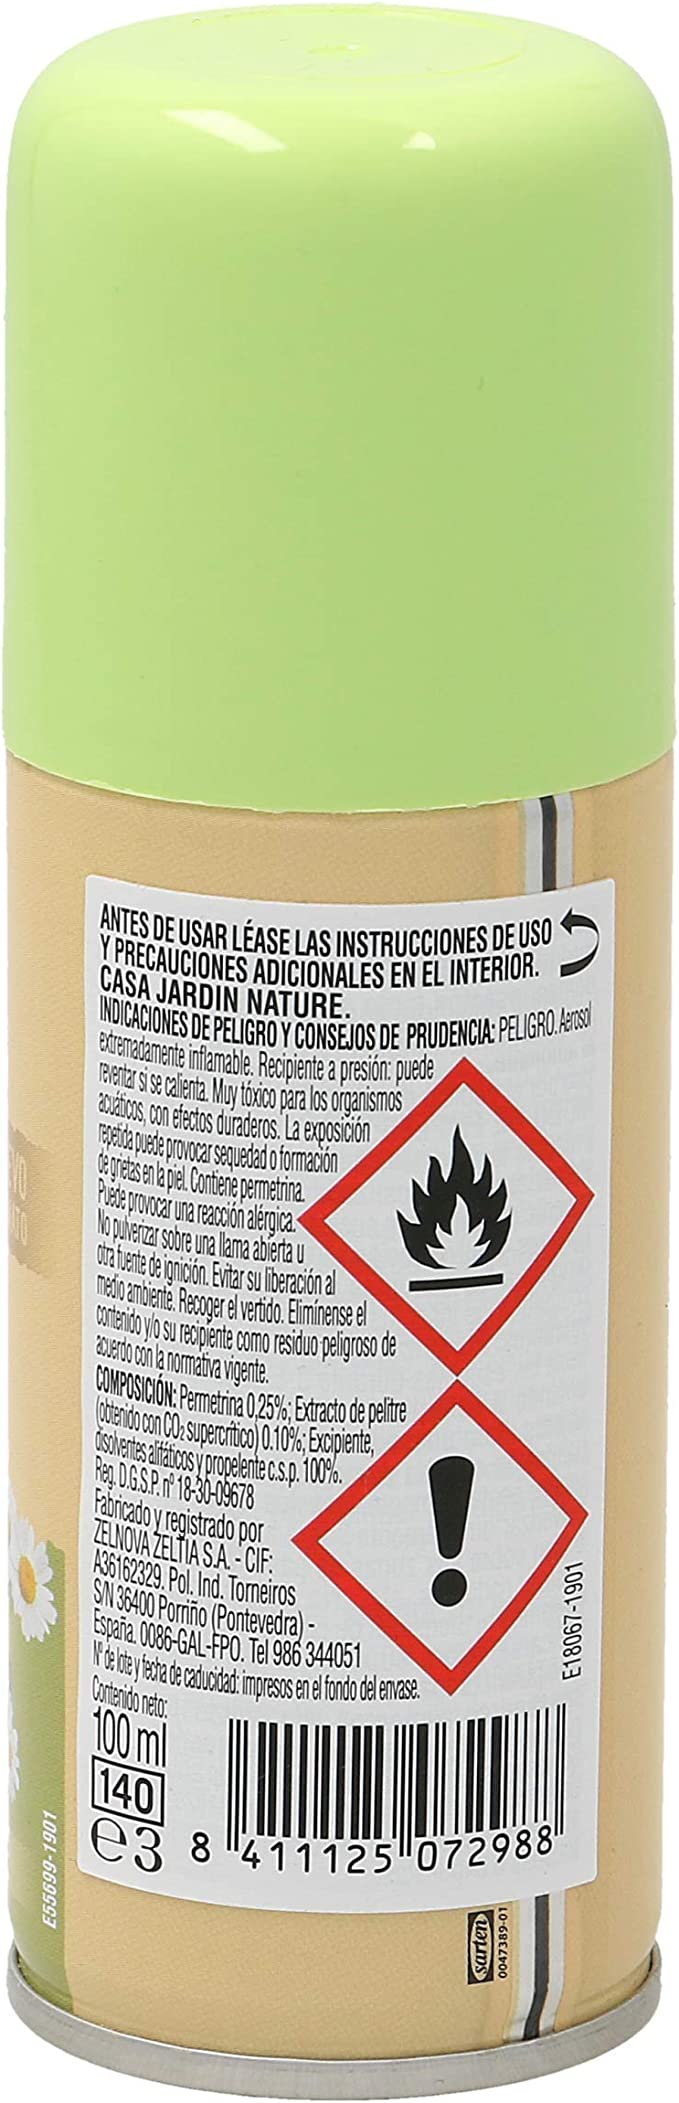 CASA JARDÍN insecticida nature spray 100 ml: Amazon.es: Hogar